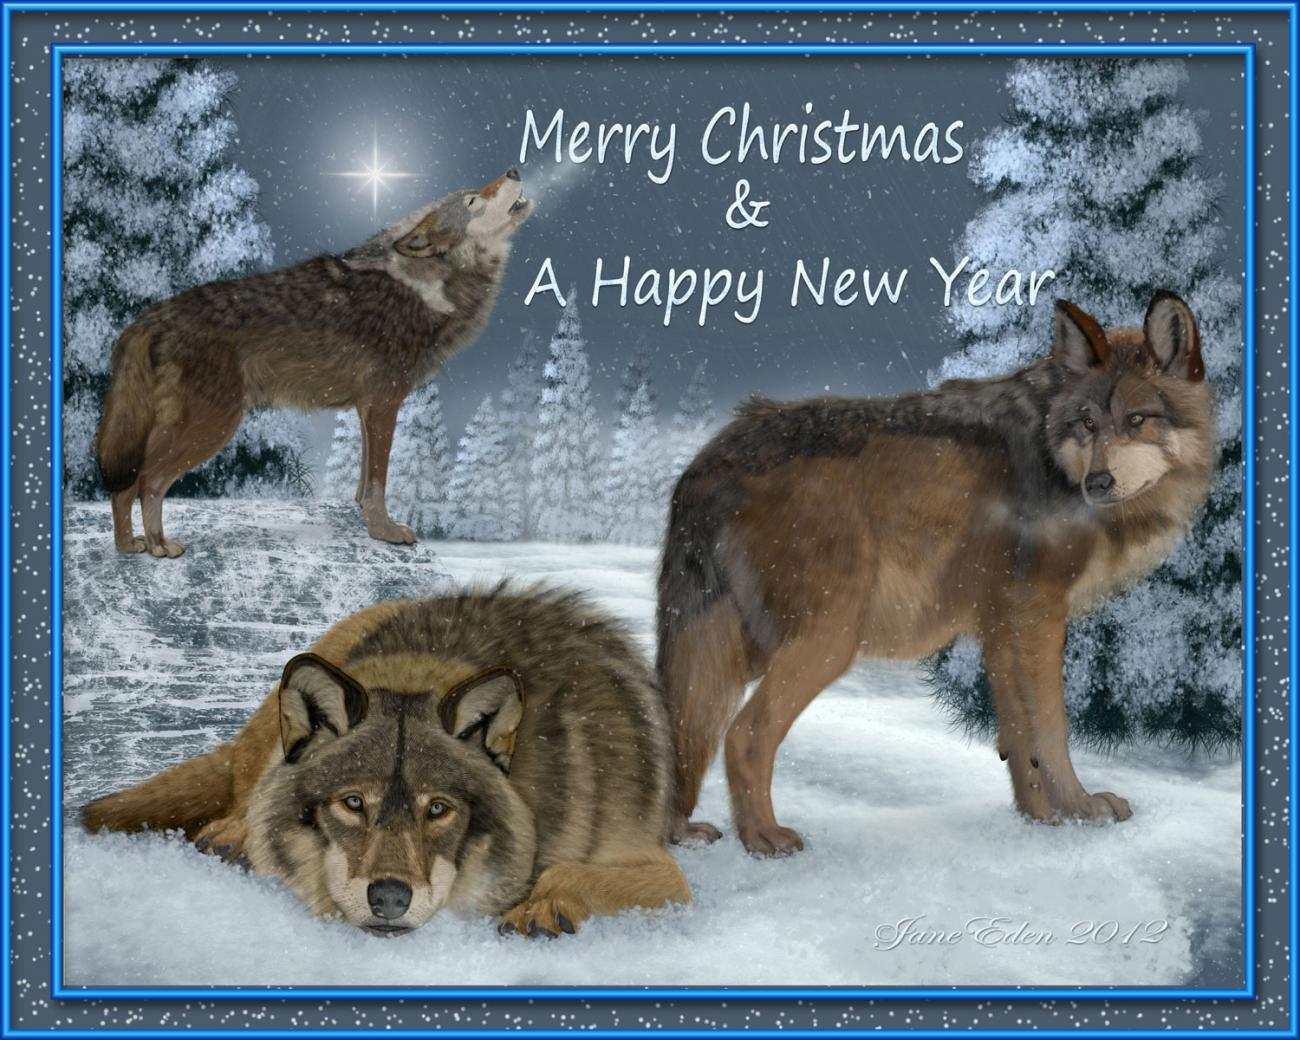 Merry Christmas to all my Rendo friends!